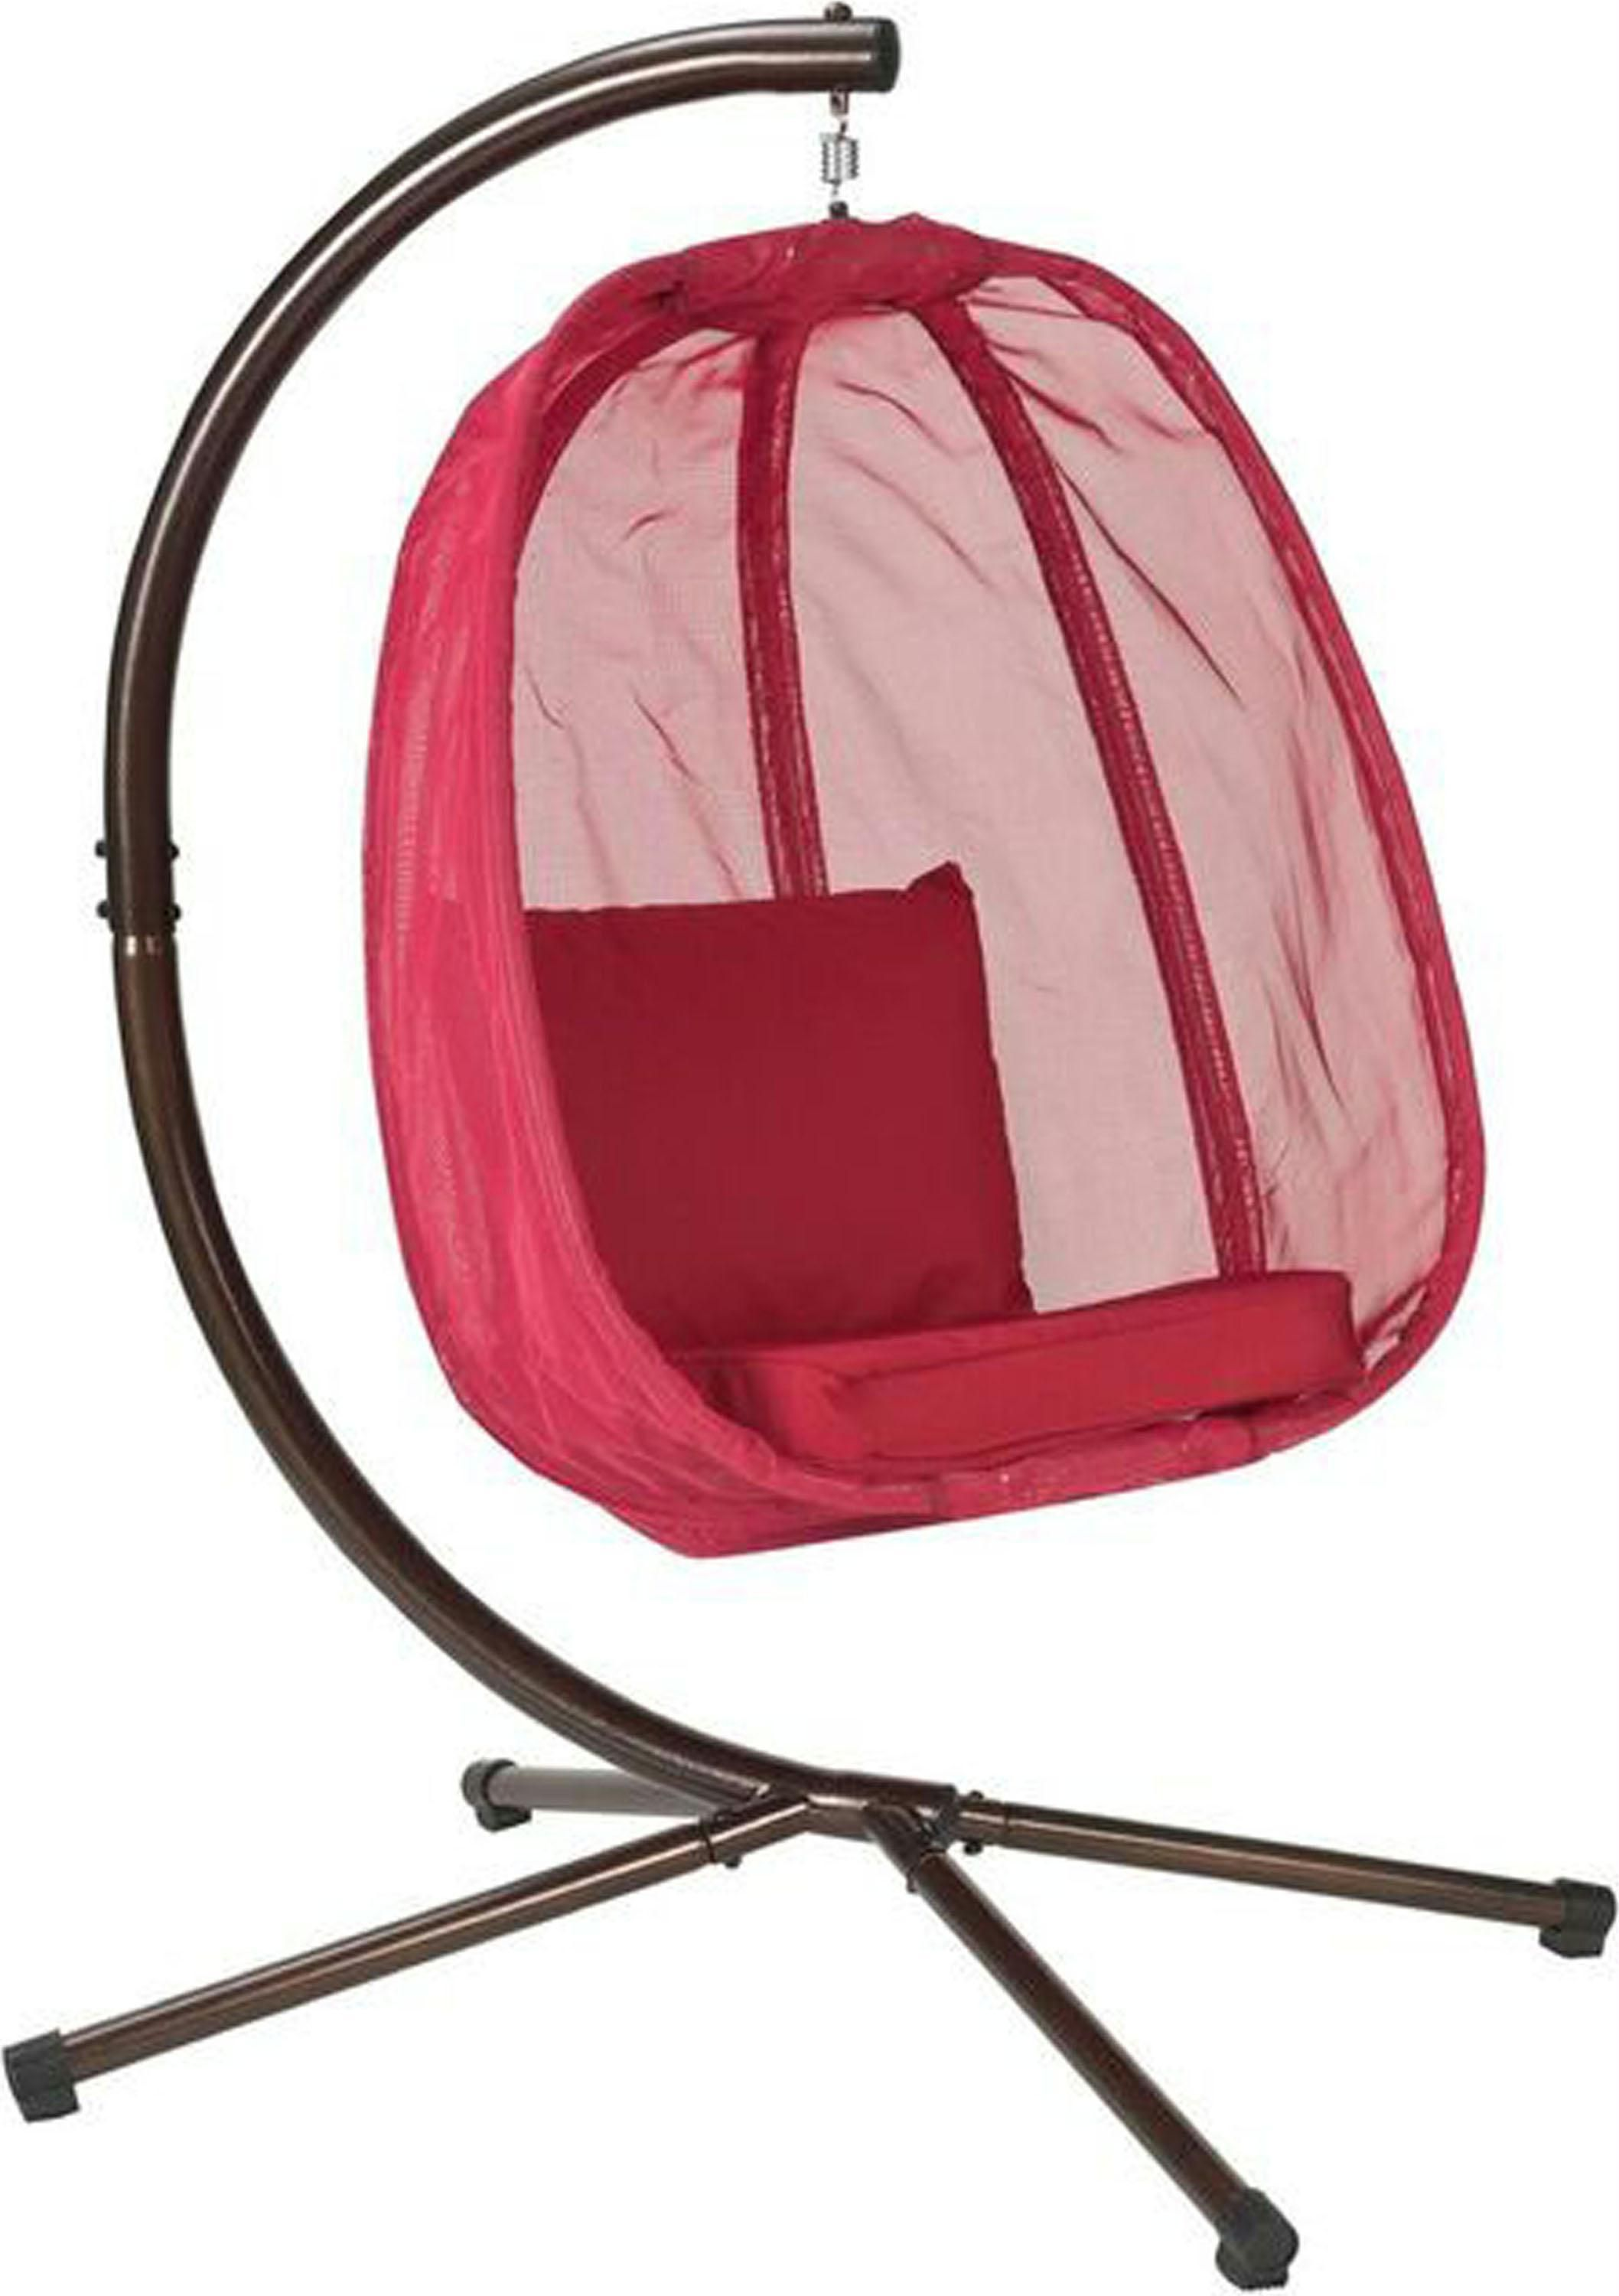 Egg Chair With Frame Hanging egg chair, Egg chair